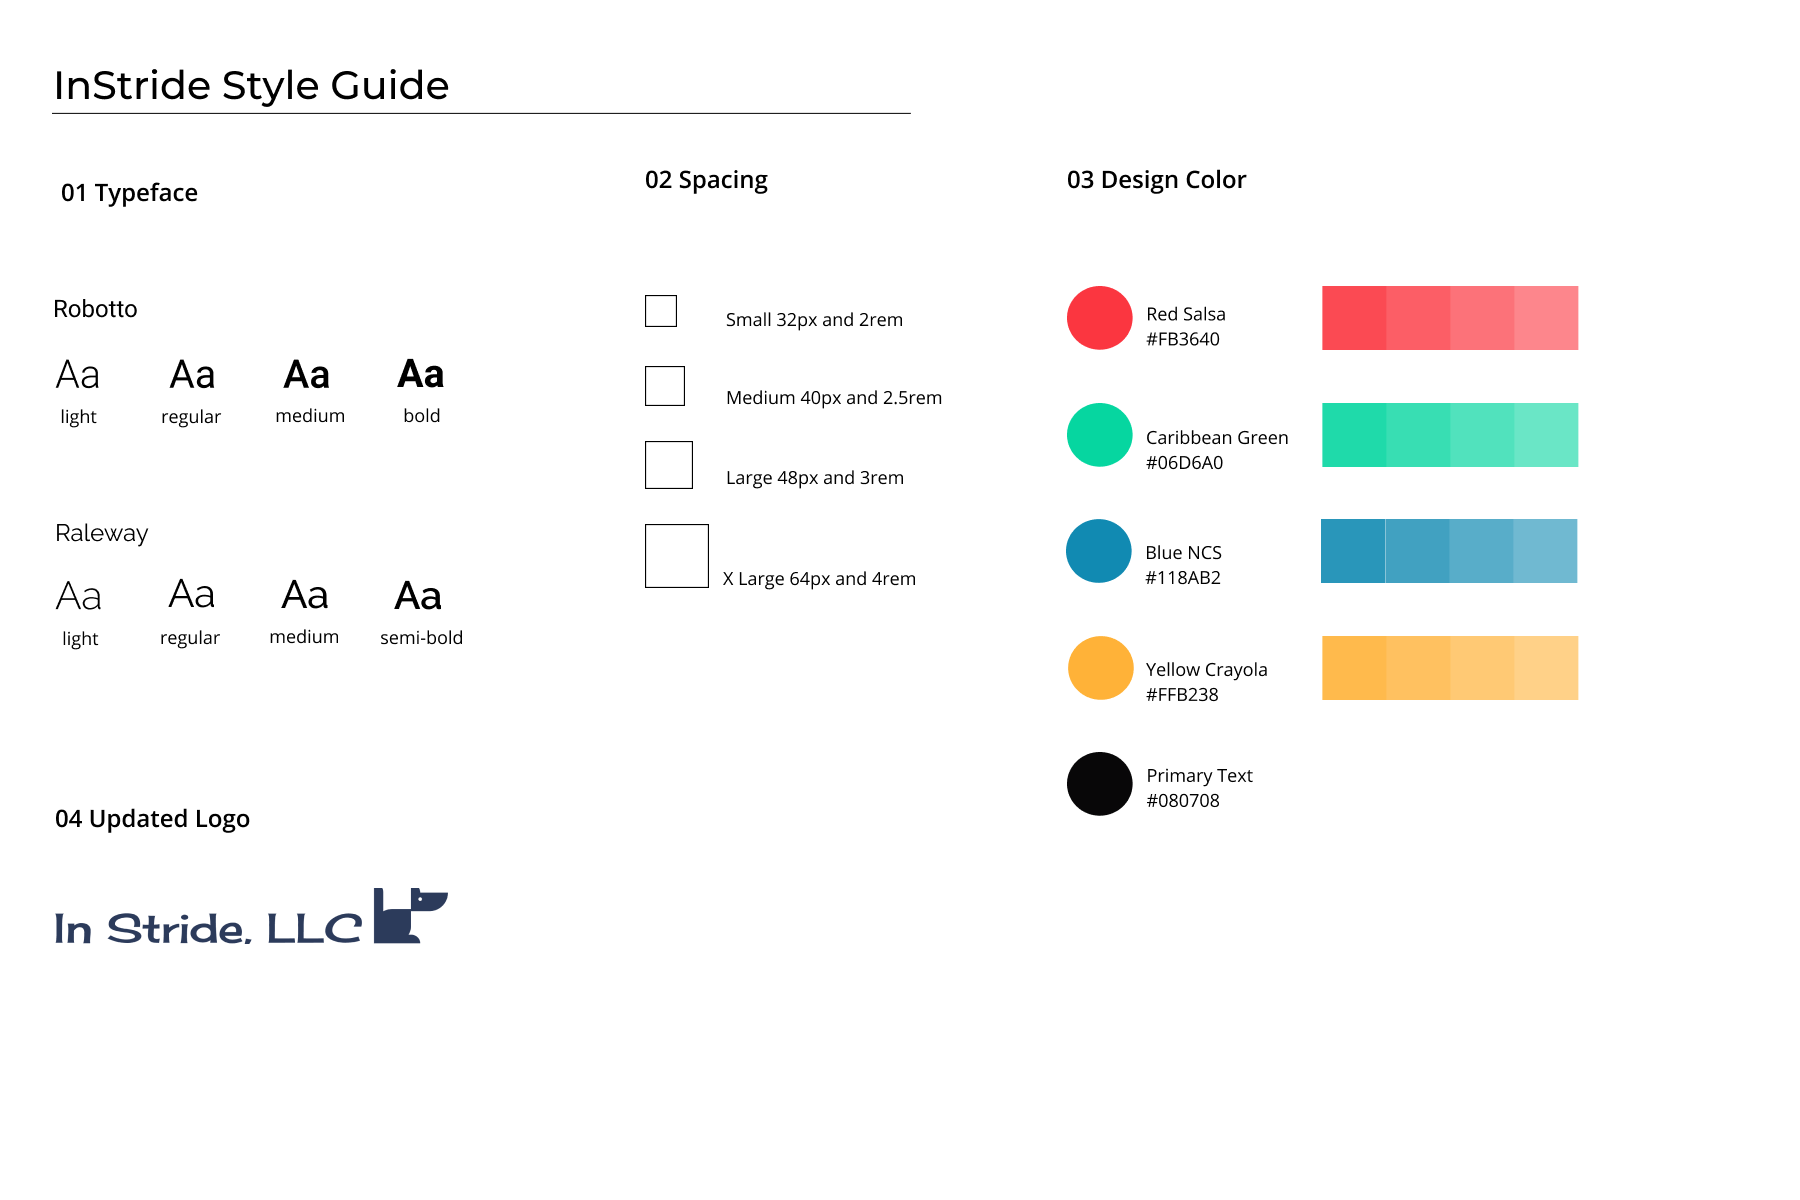 image of style guide